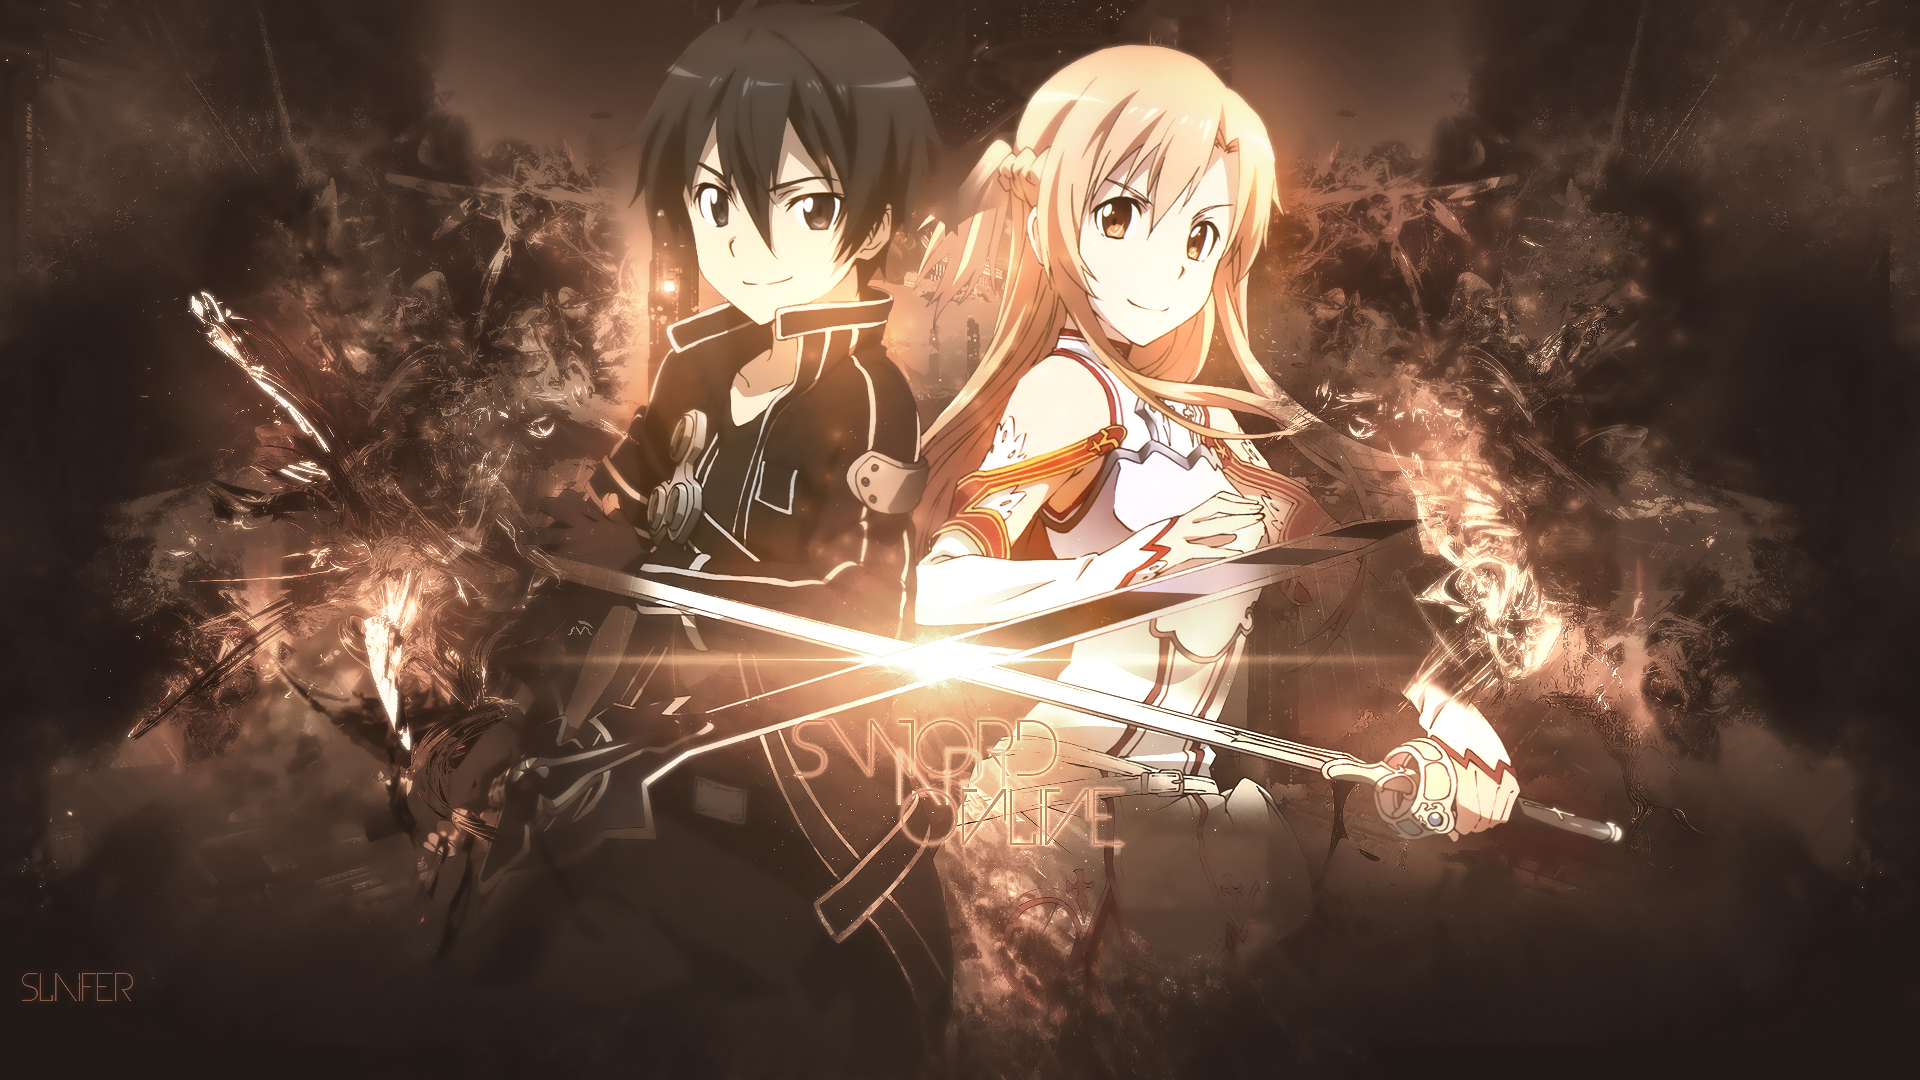 Anime - Sword Art Online  Wallpaper